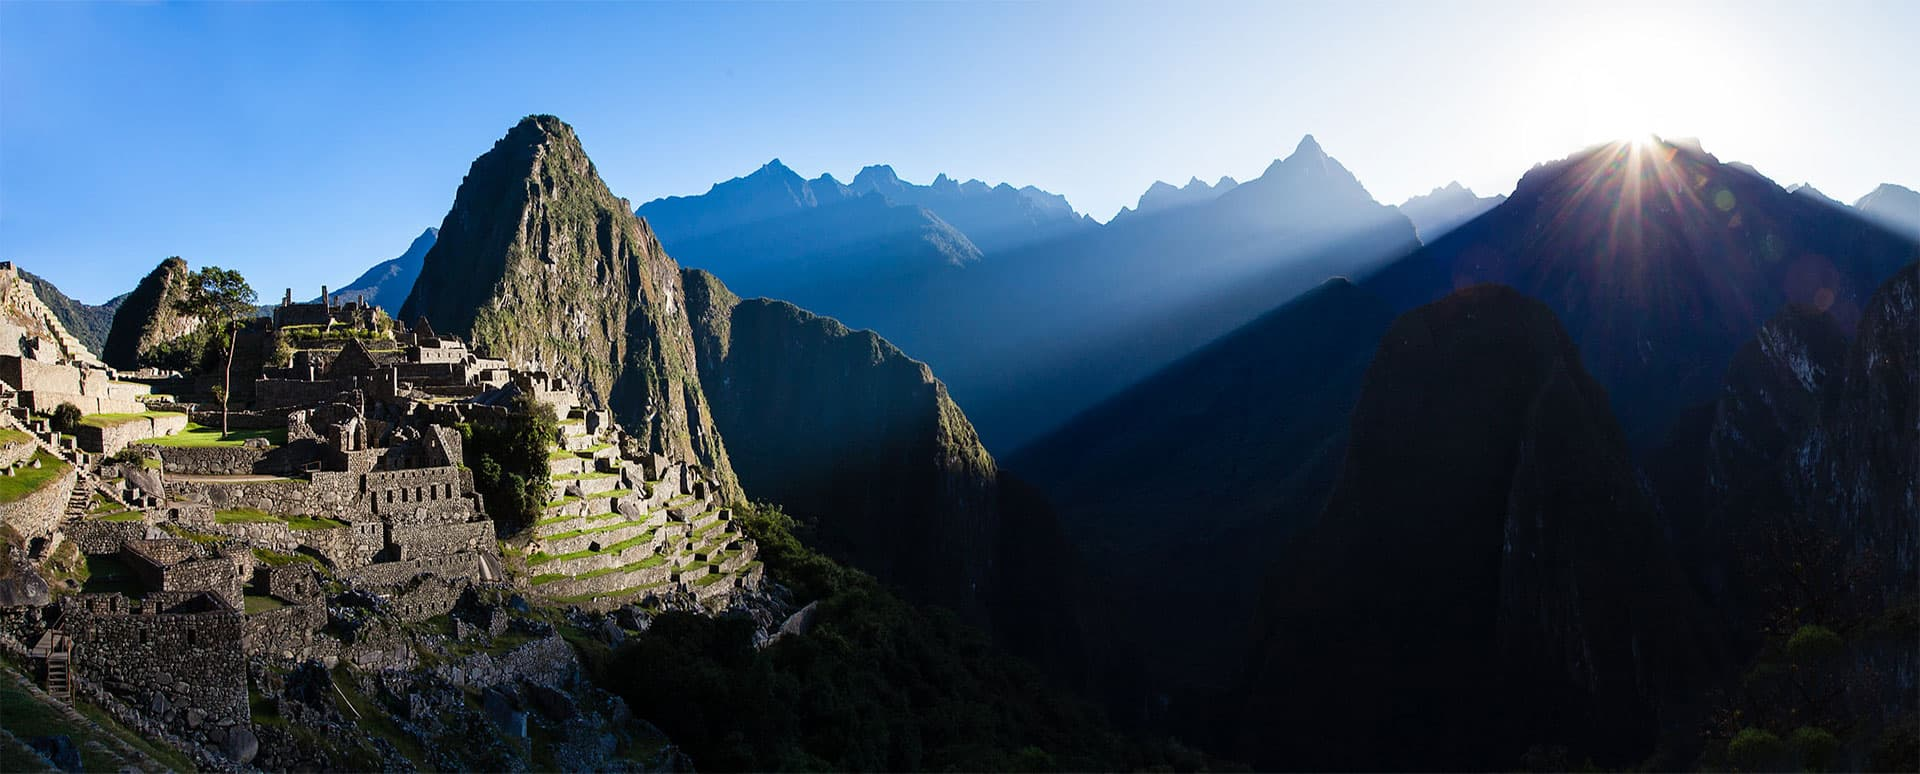 Tours Packages to Machu Picchu